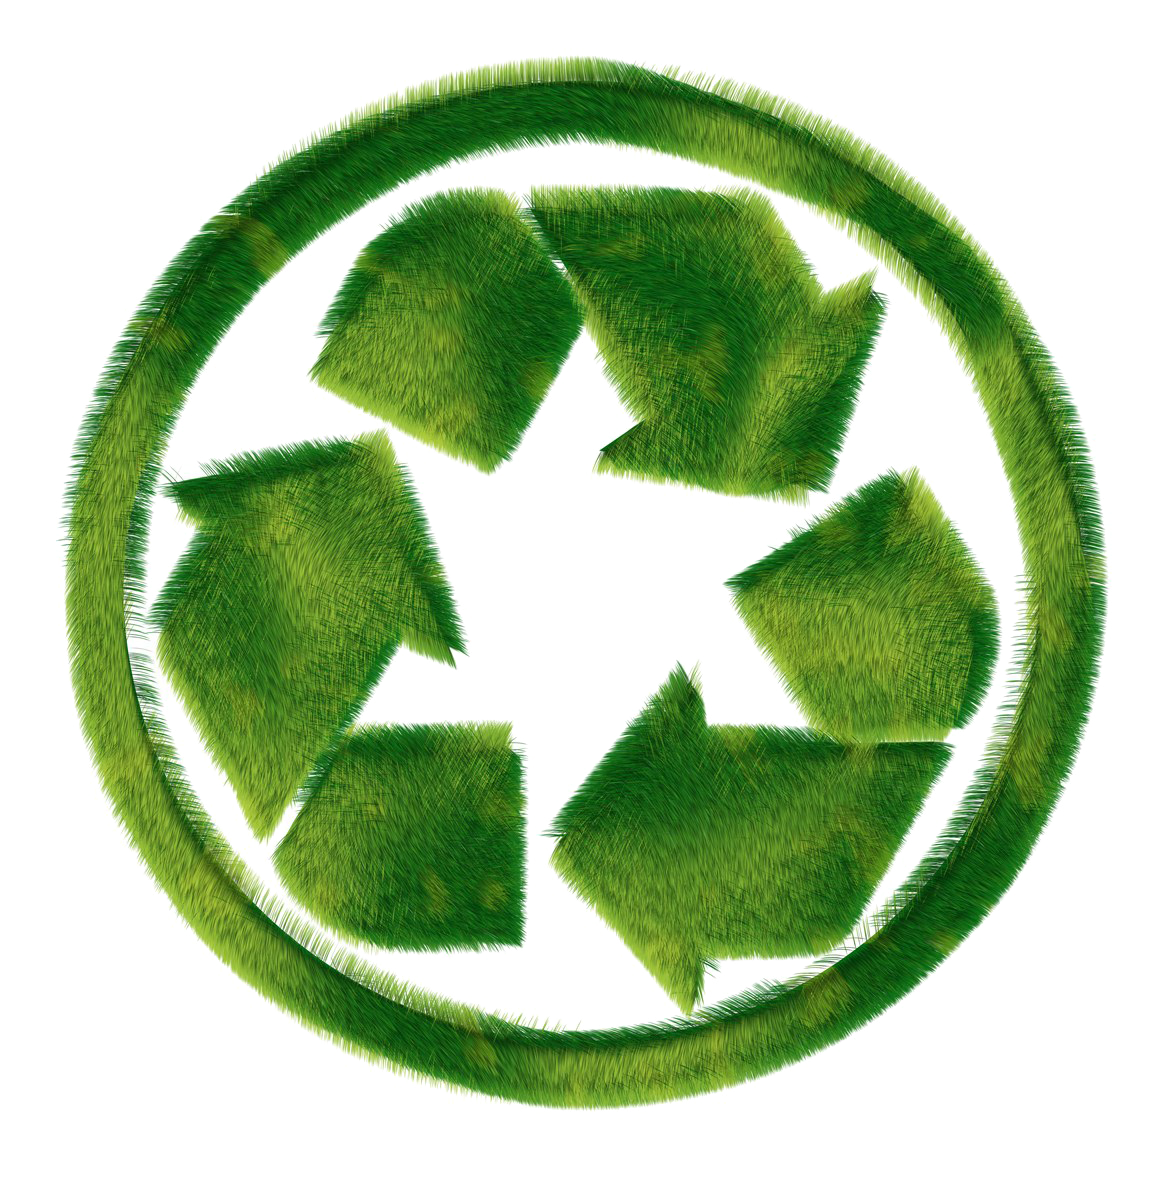 Recycle Symbol Recycling Friendly Environmentally Free Clipart HD PNG Image